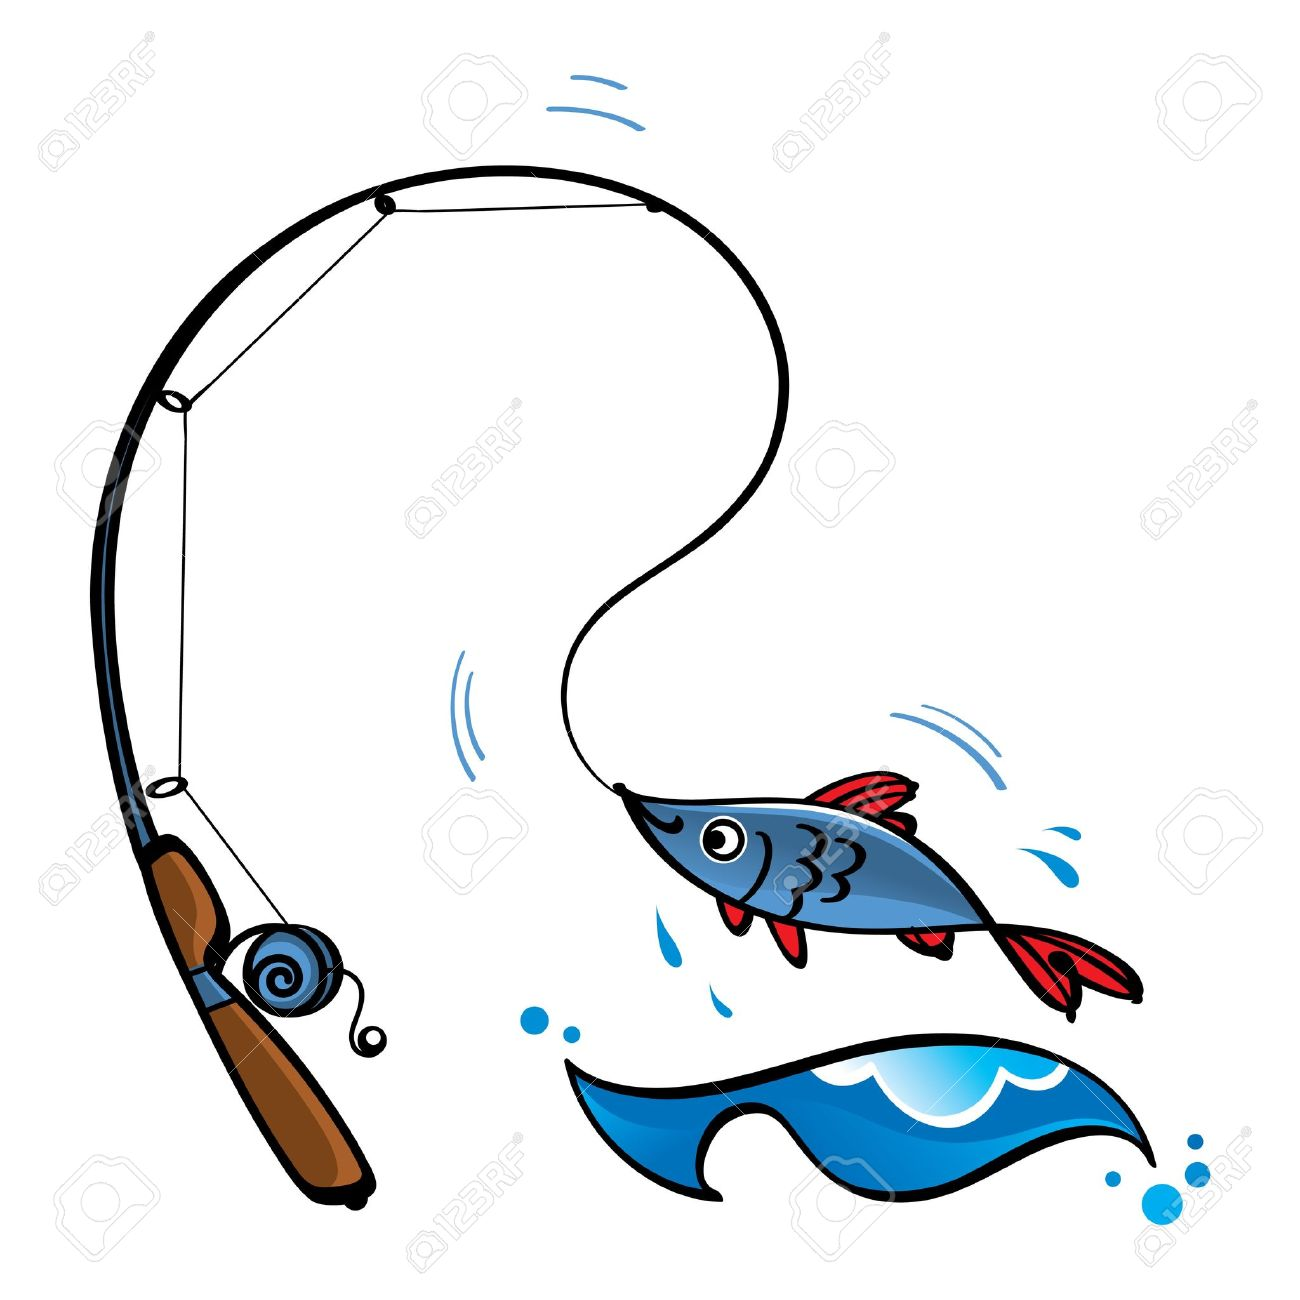 Collection of Fishing rod clipart.